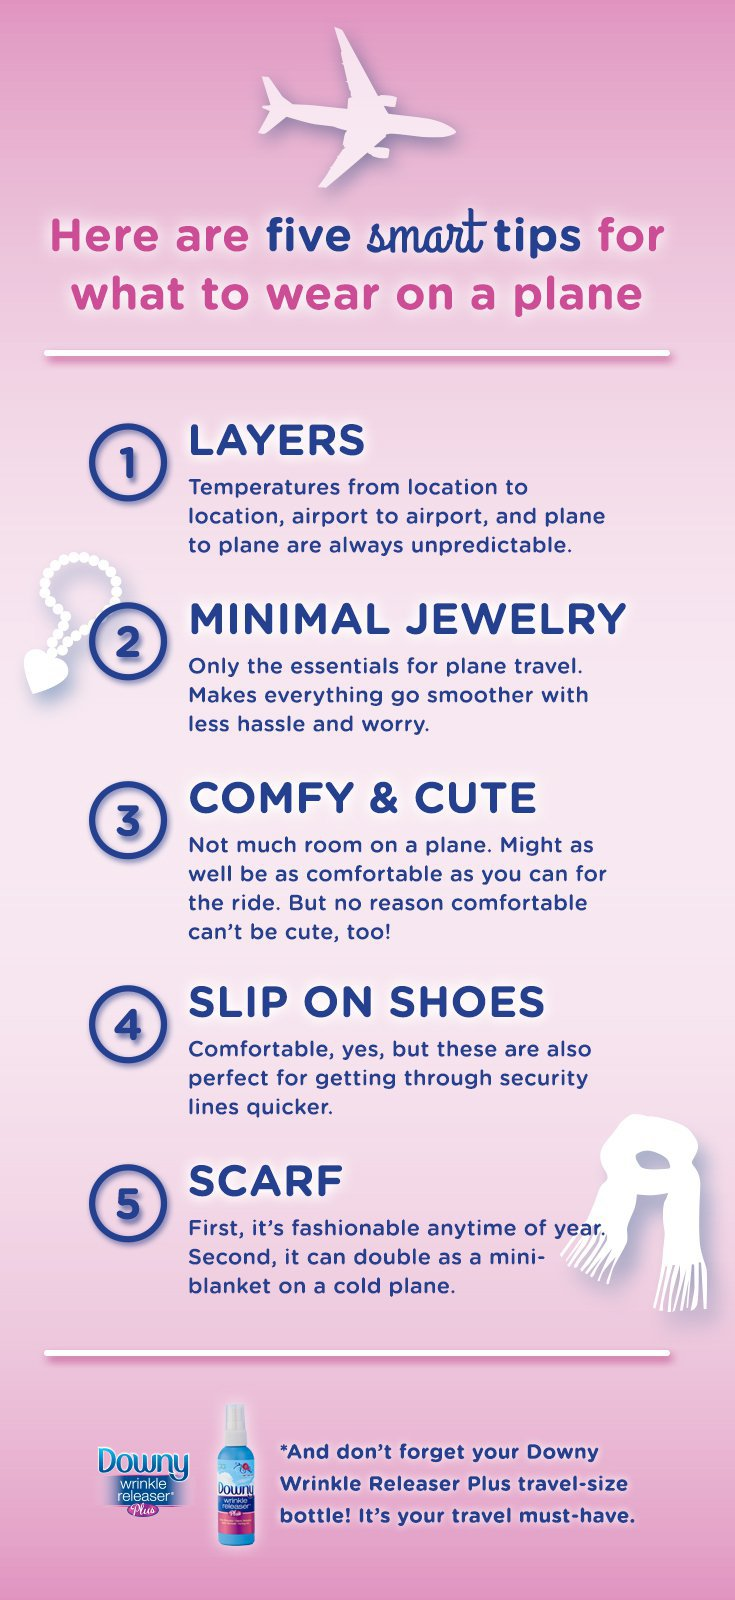 what-to-wear-on-a-plane-Downy-Wrinkle-Releaser-Plus